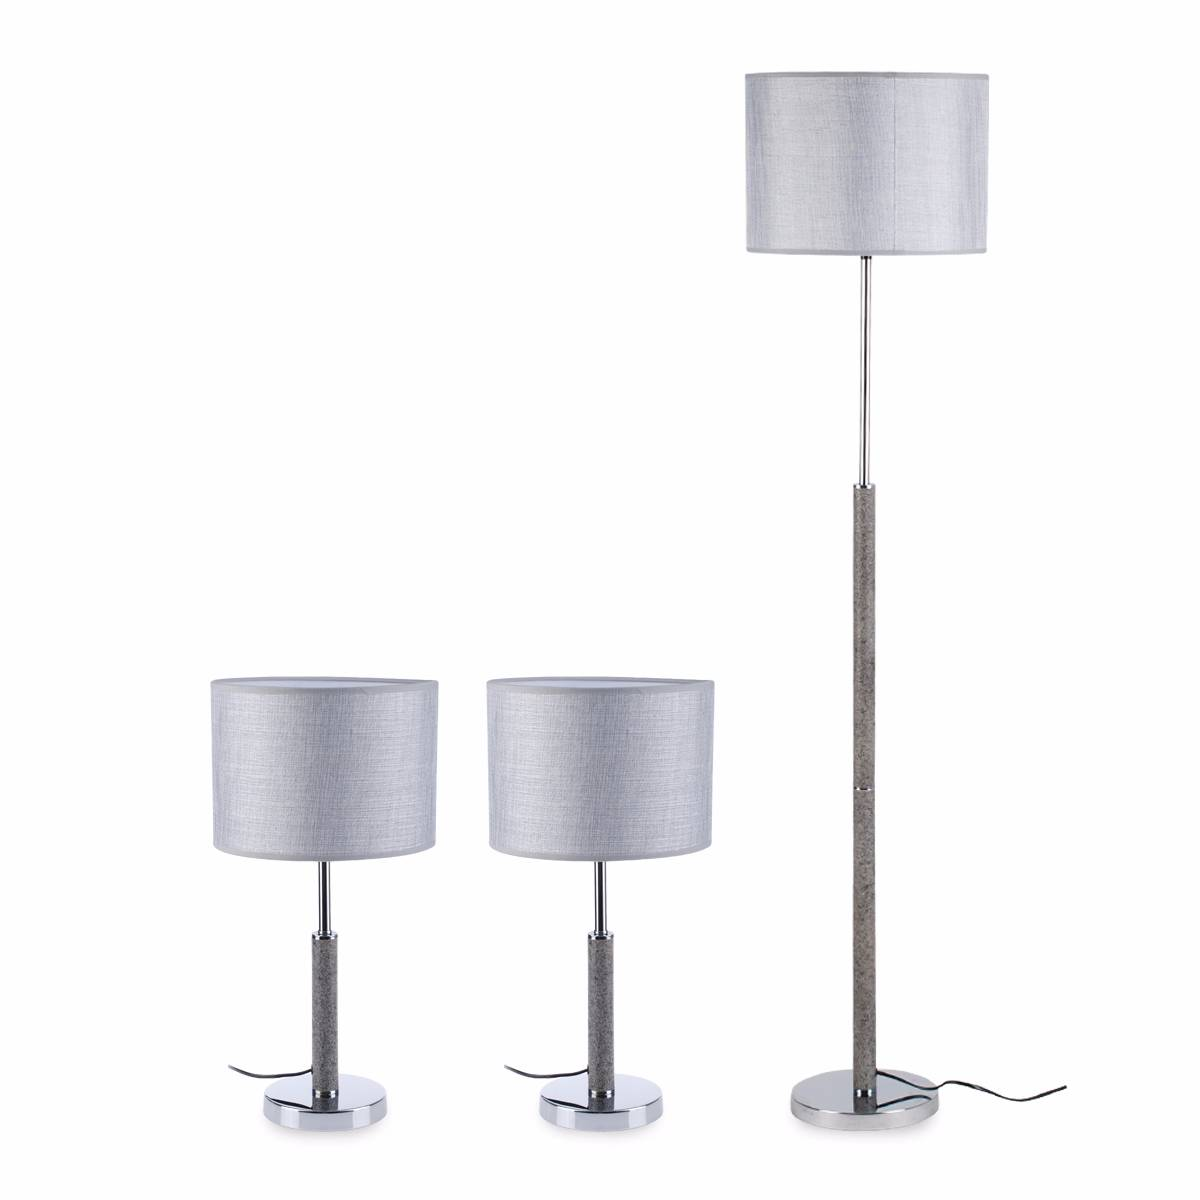 Combo Set (2 Table Lamp + 1 Floor Lamp) Grey 3+dl-cm4033-gr-vg